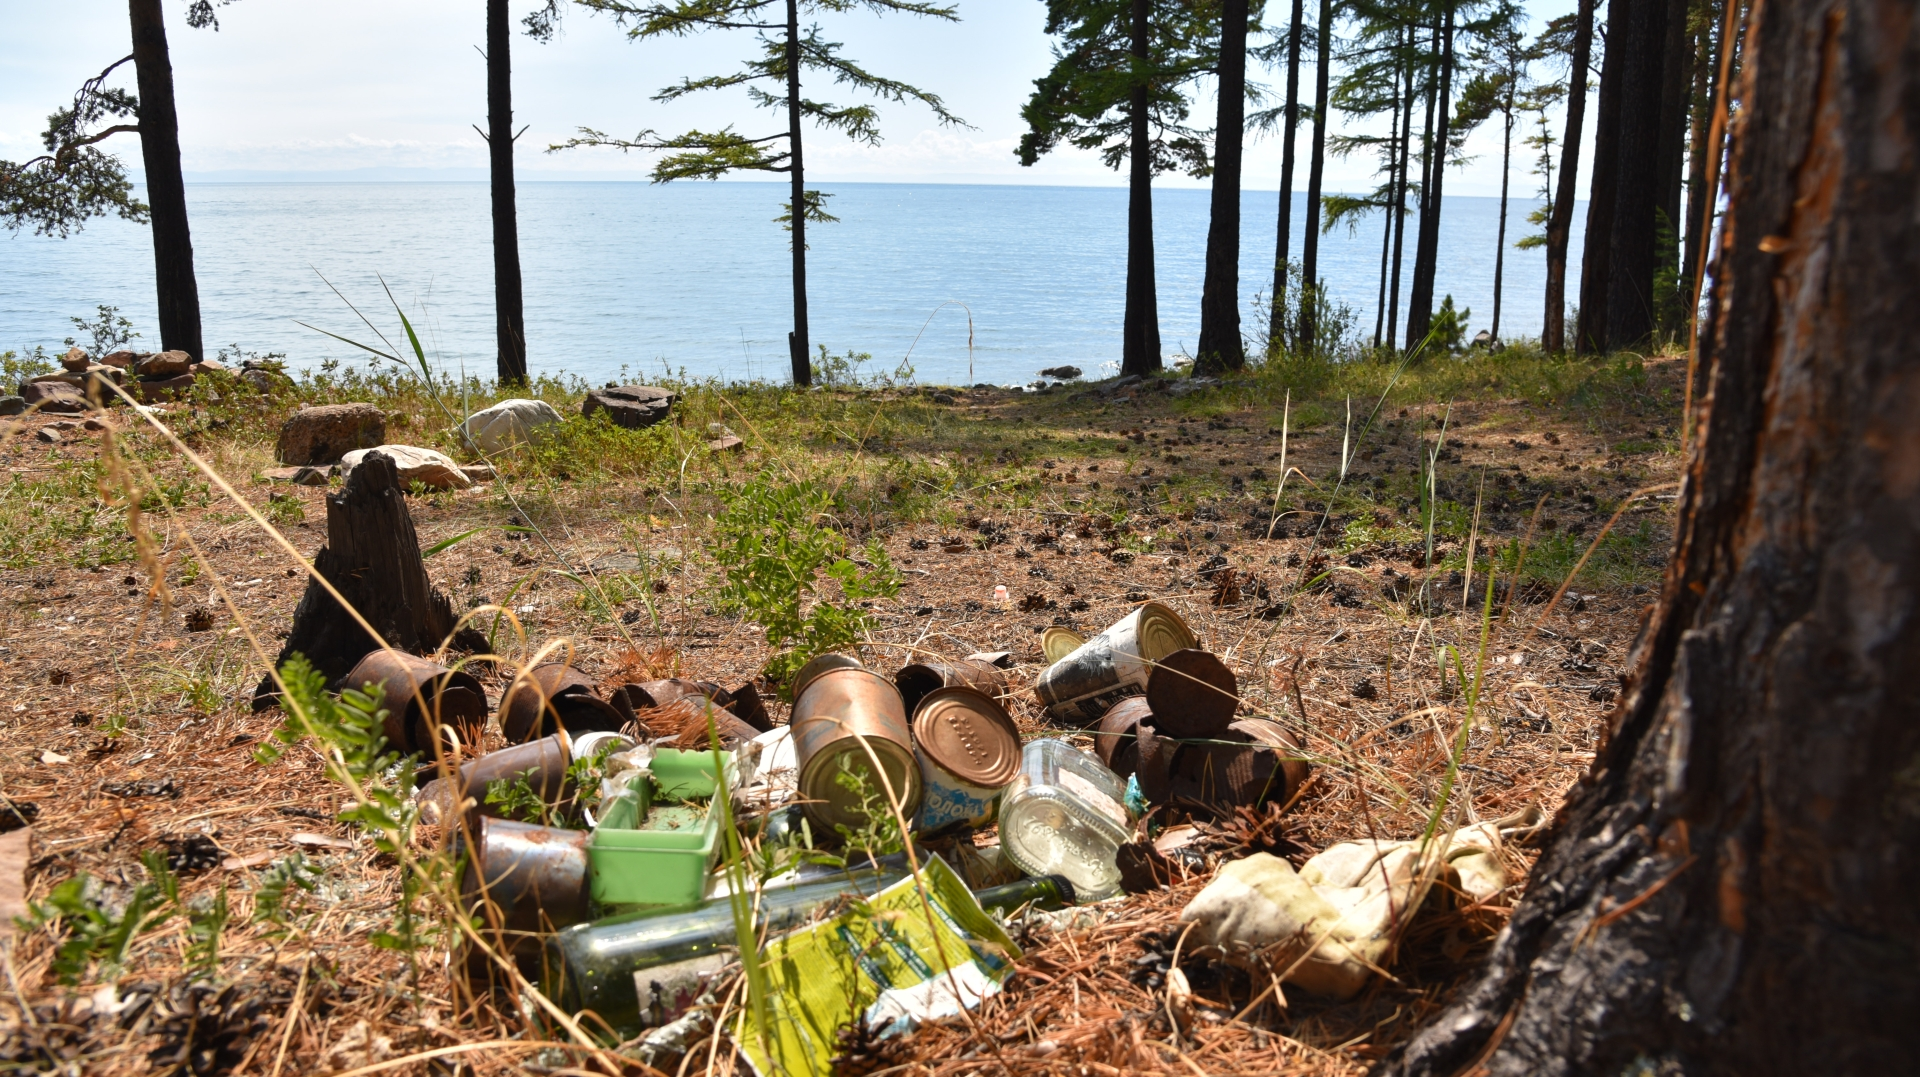 Some tourists camp around Lake Baikal illegally, leaving their rubbish behind.